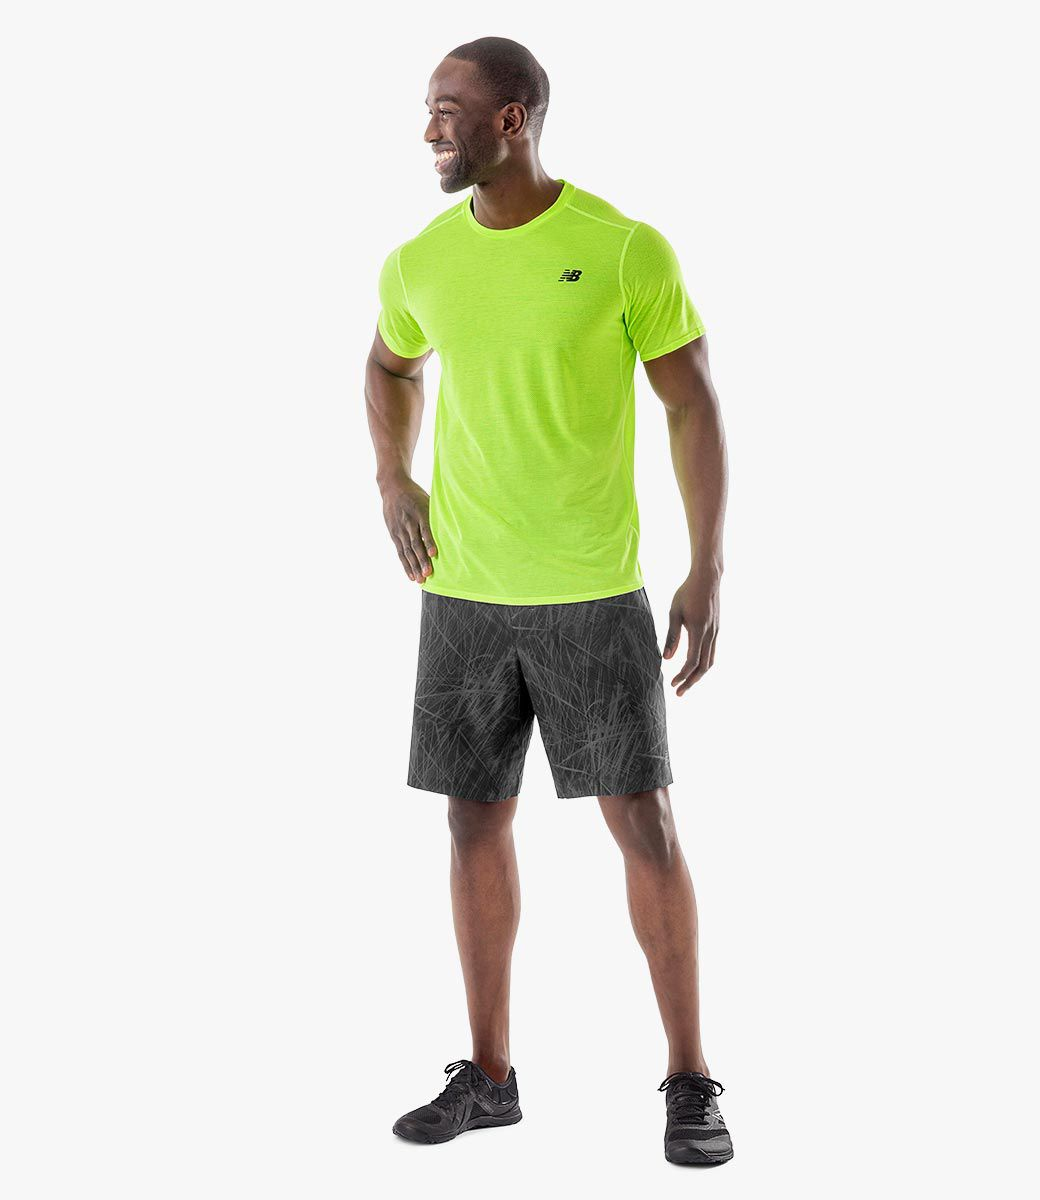 New Balance Men's Performance Training Look,